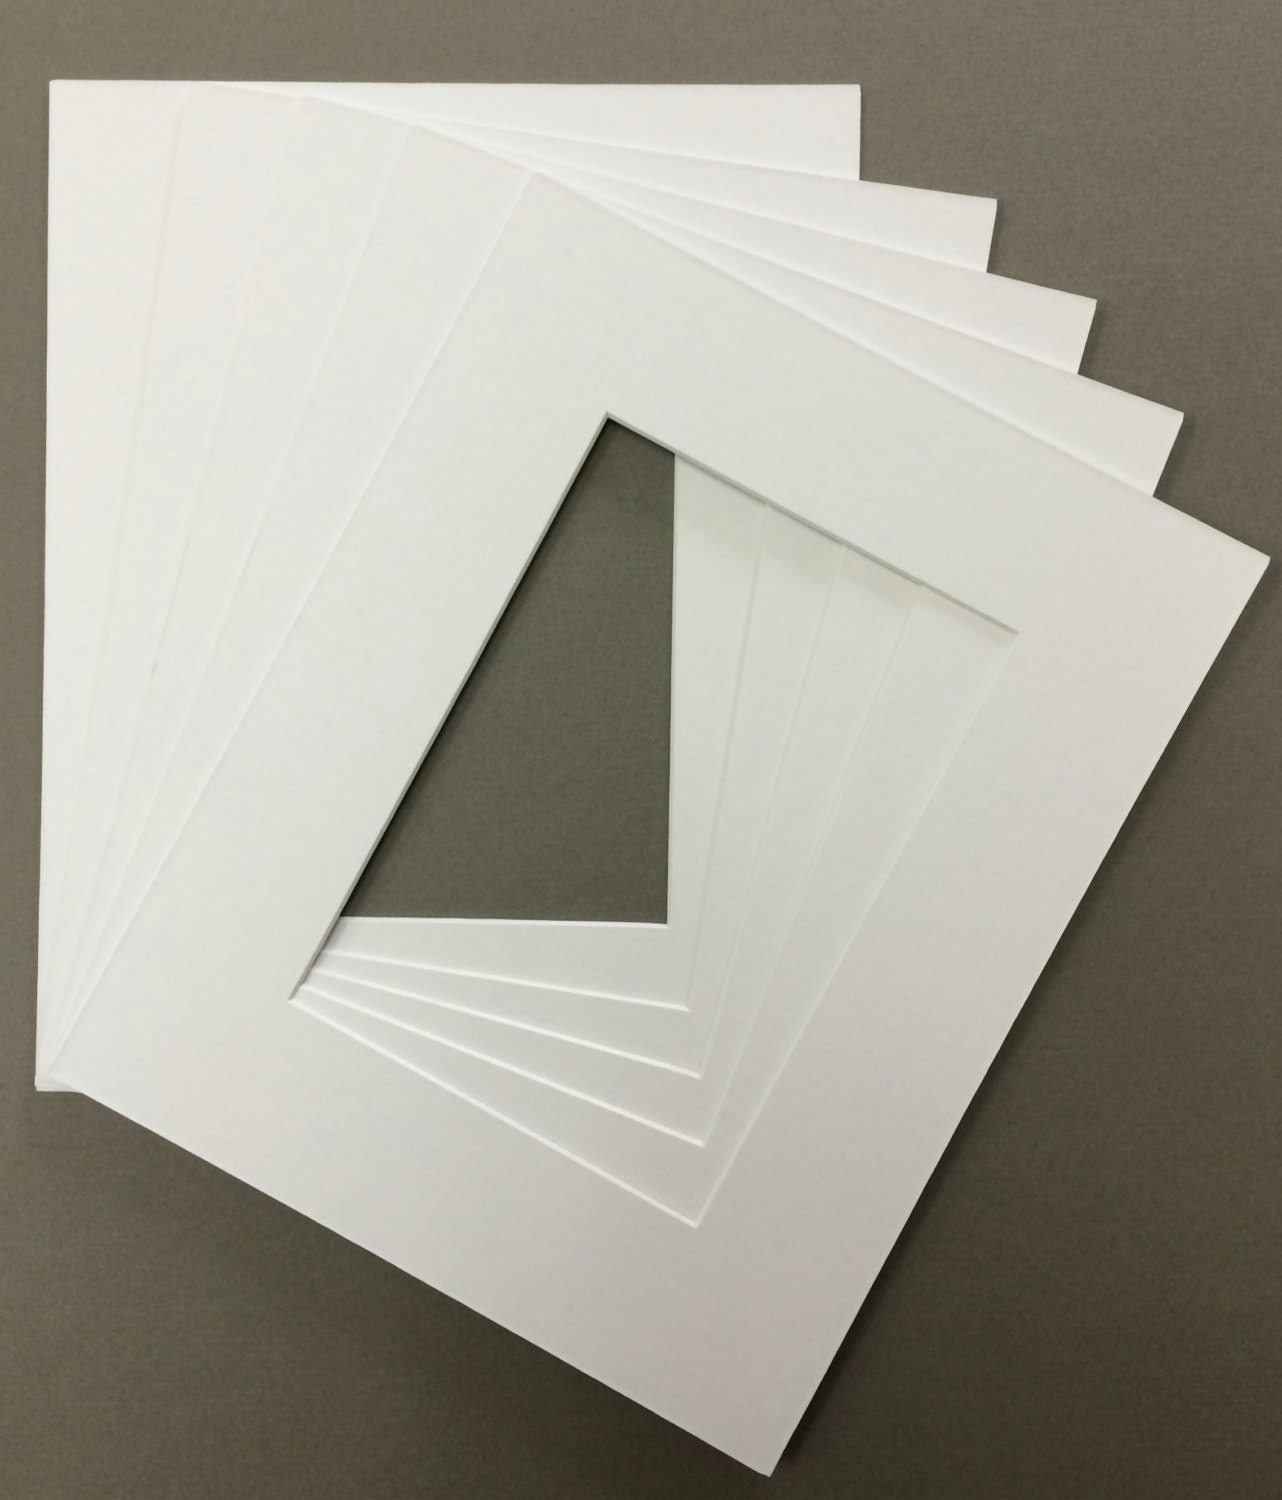 Pack Of 5 11x14 Picture Mats For 8x12 Pictures Over 30